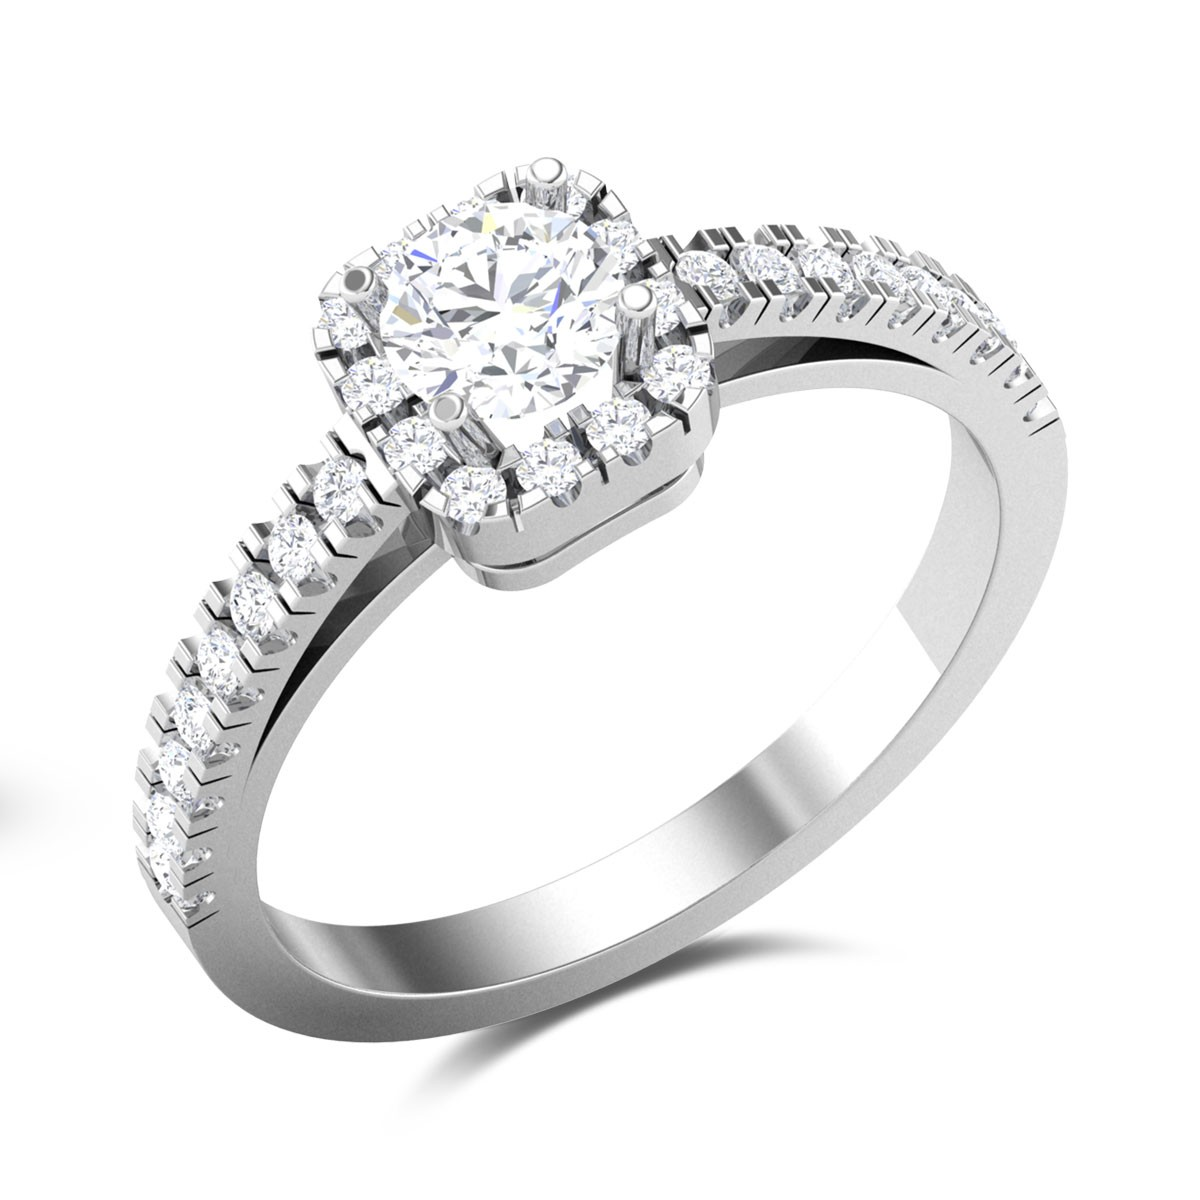 Sparkling Signature Solitaire Ring